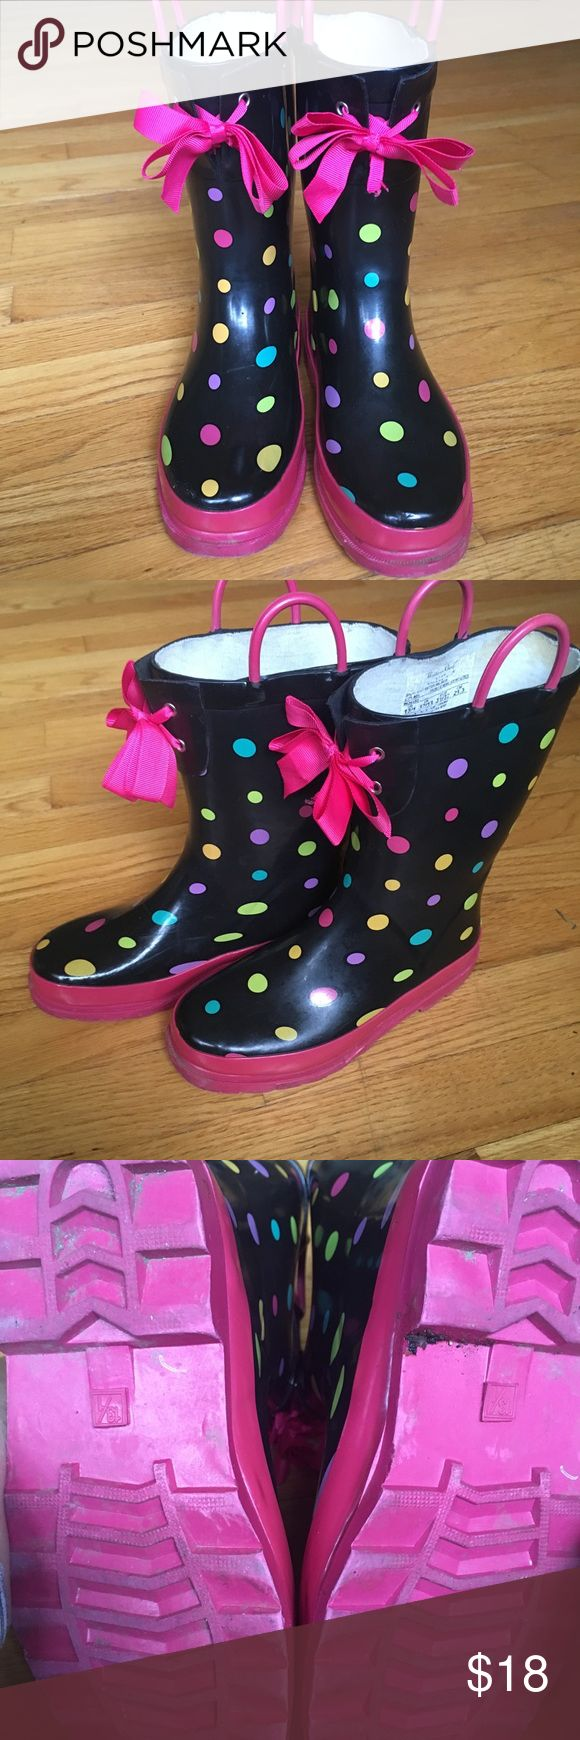 Western Chief Girls Polka Dot Rain Boots These gently worn Western Chief girls' rain boots are pink on the bottom and the signature handles are pink as well. The body has multi-colored polka dots. The pink ribbon bows add an extra flair. Girls' 13/1, as noted on the bottom. $18. Western Chief Shoes Boots